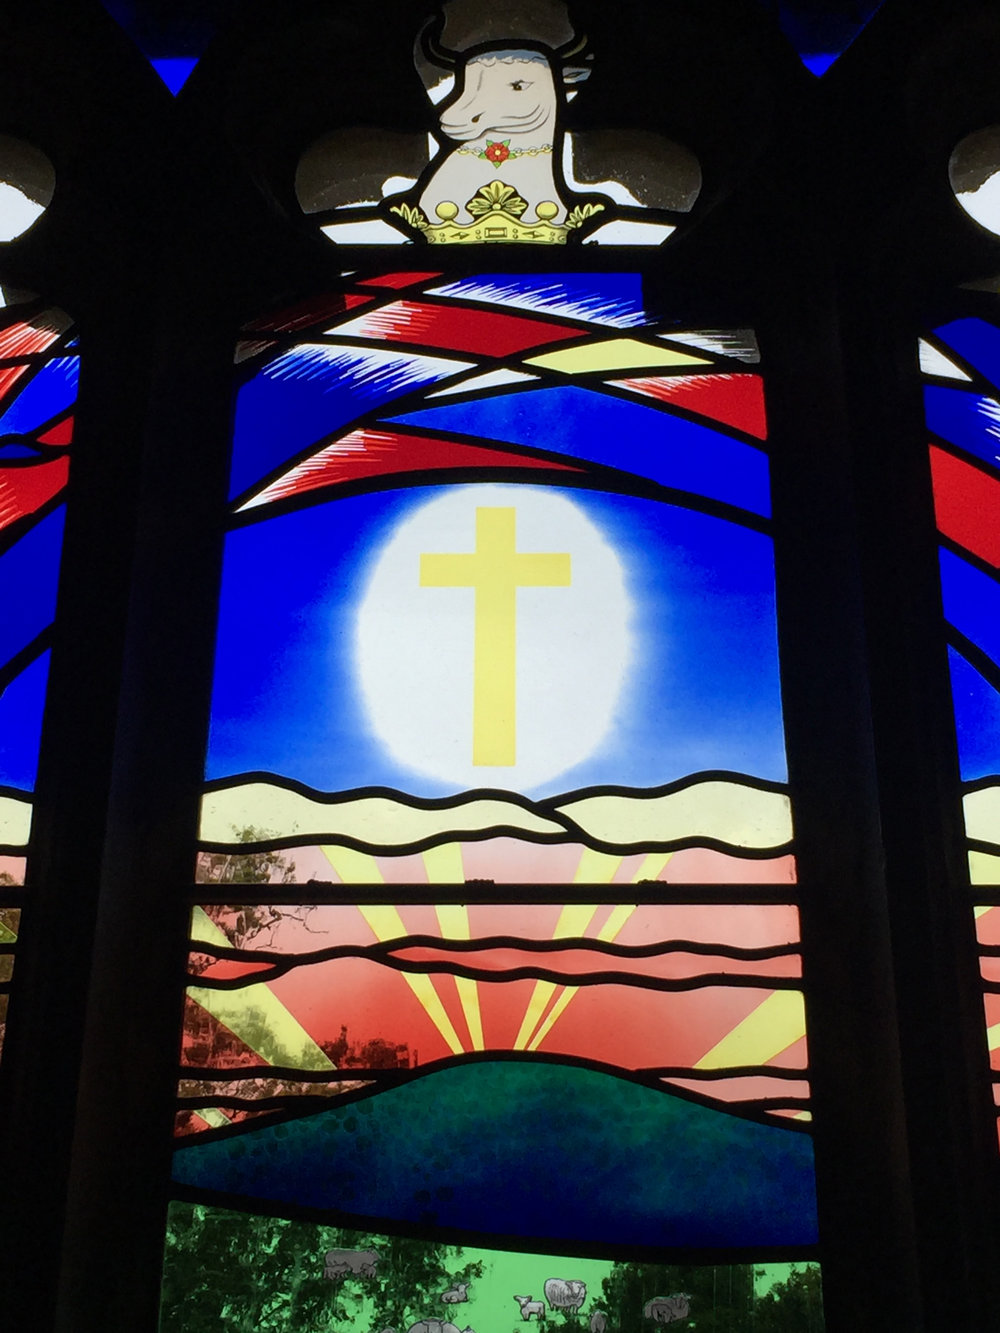 Central panel detail of stained glass for Eridge Church window